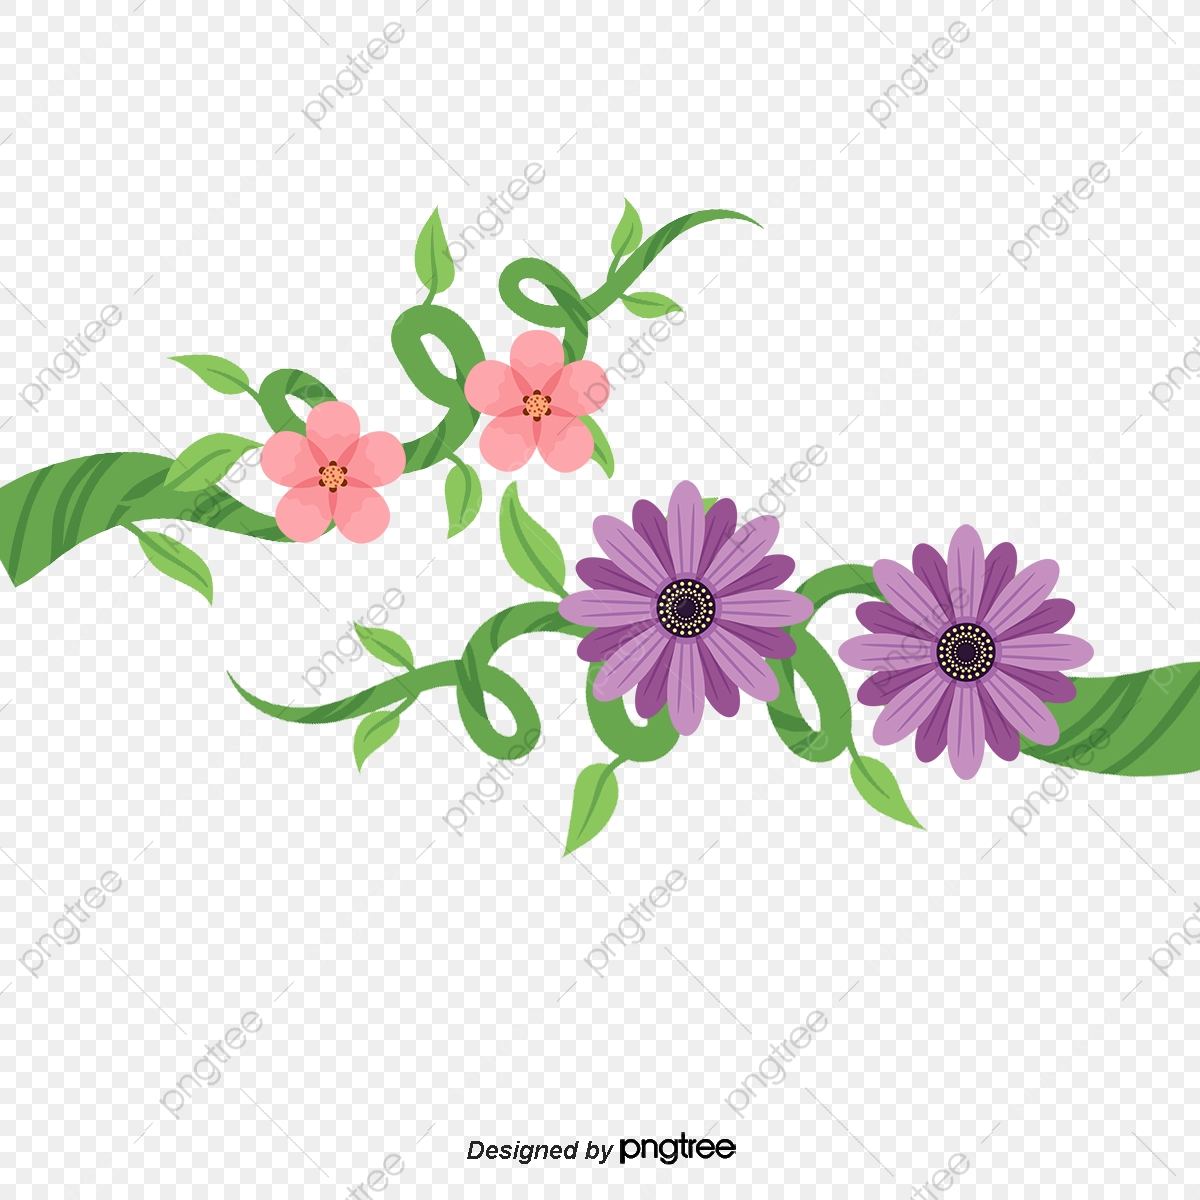 images?q=tbn:ANd9GcQh_l3eQ5xwiPy07kGEXjmjgmBKBRB7H2mRxCGhv1tFWg5c_mWT Get Inspired For Flower Vector Clipart Png @koolgadgetz.com.info